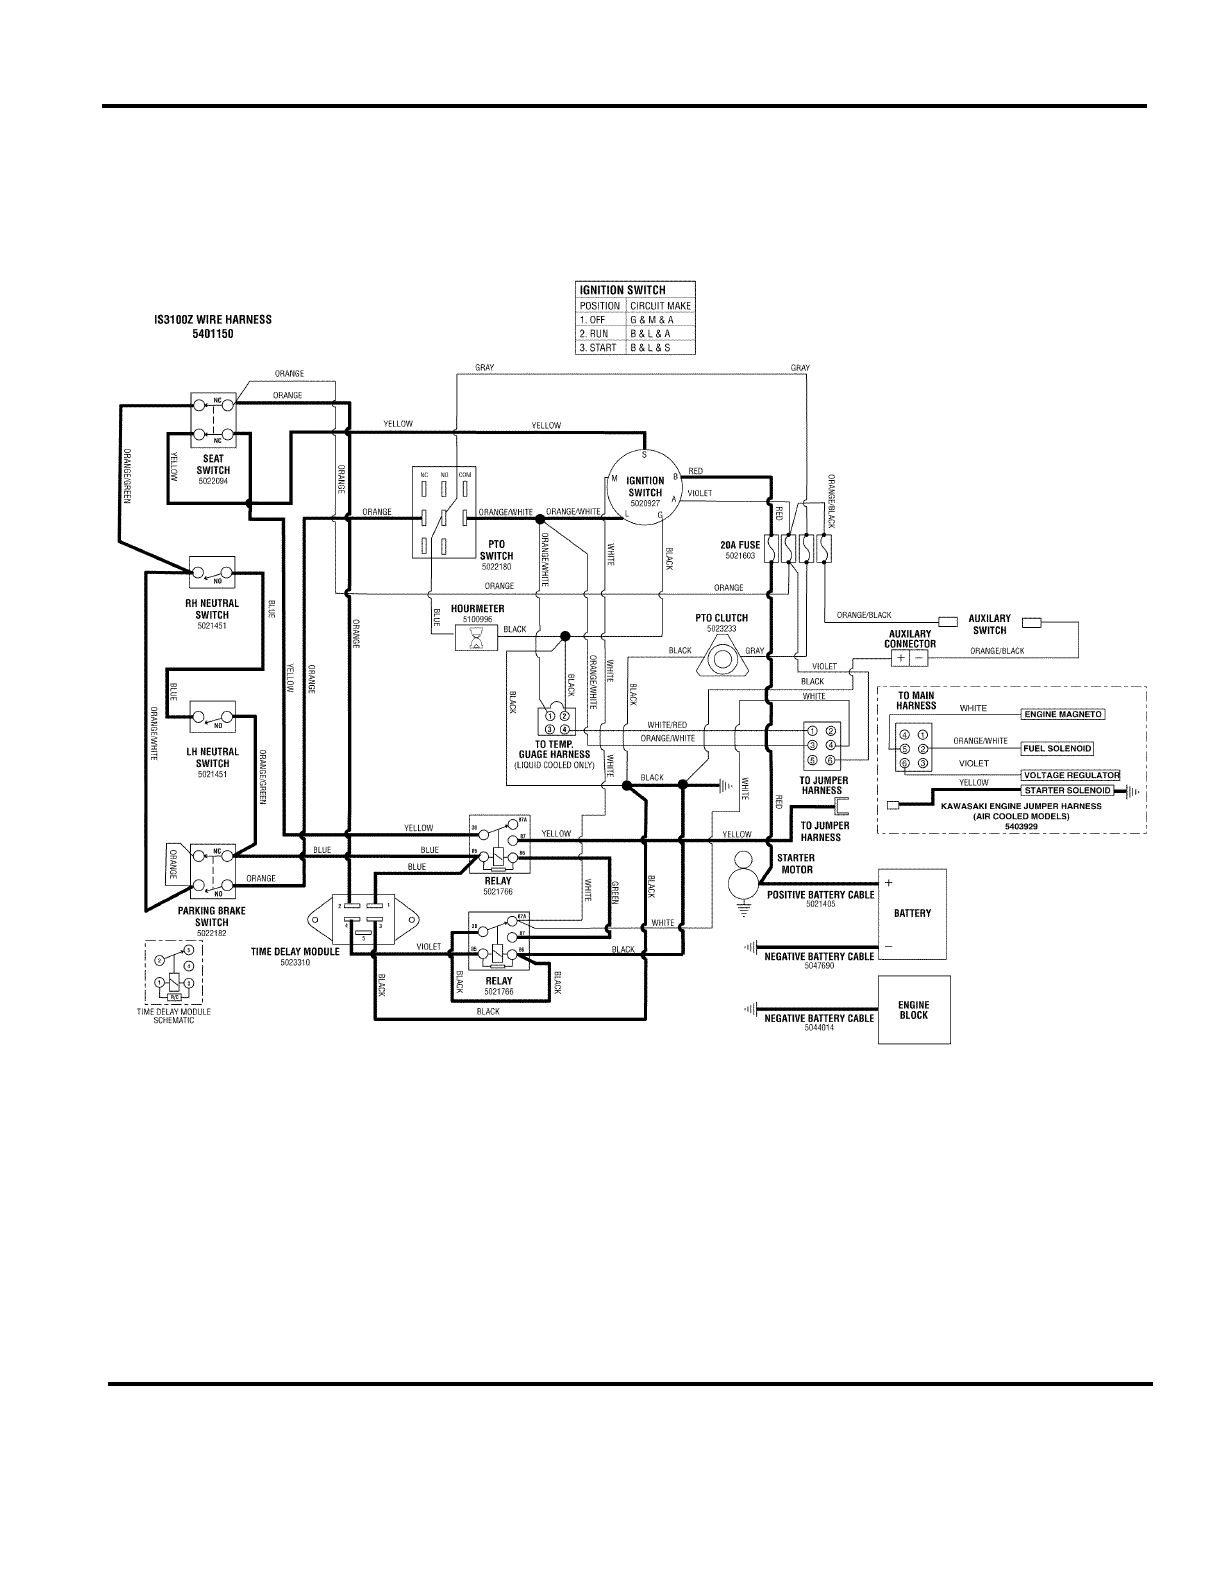 Ferris Electric Clutch Wiring Diagram Electrical Diagrams Wire Industries Lawn Mower Is3100z Series Users Manual Partsmanual Snapper